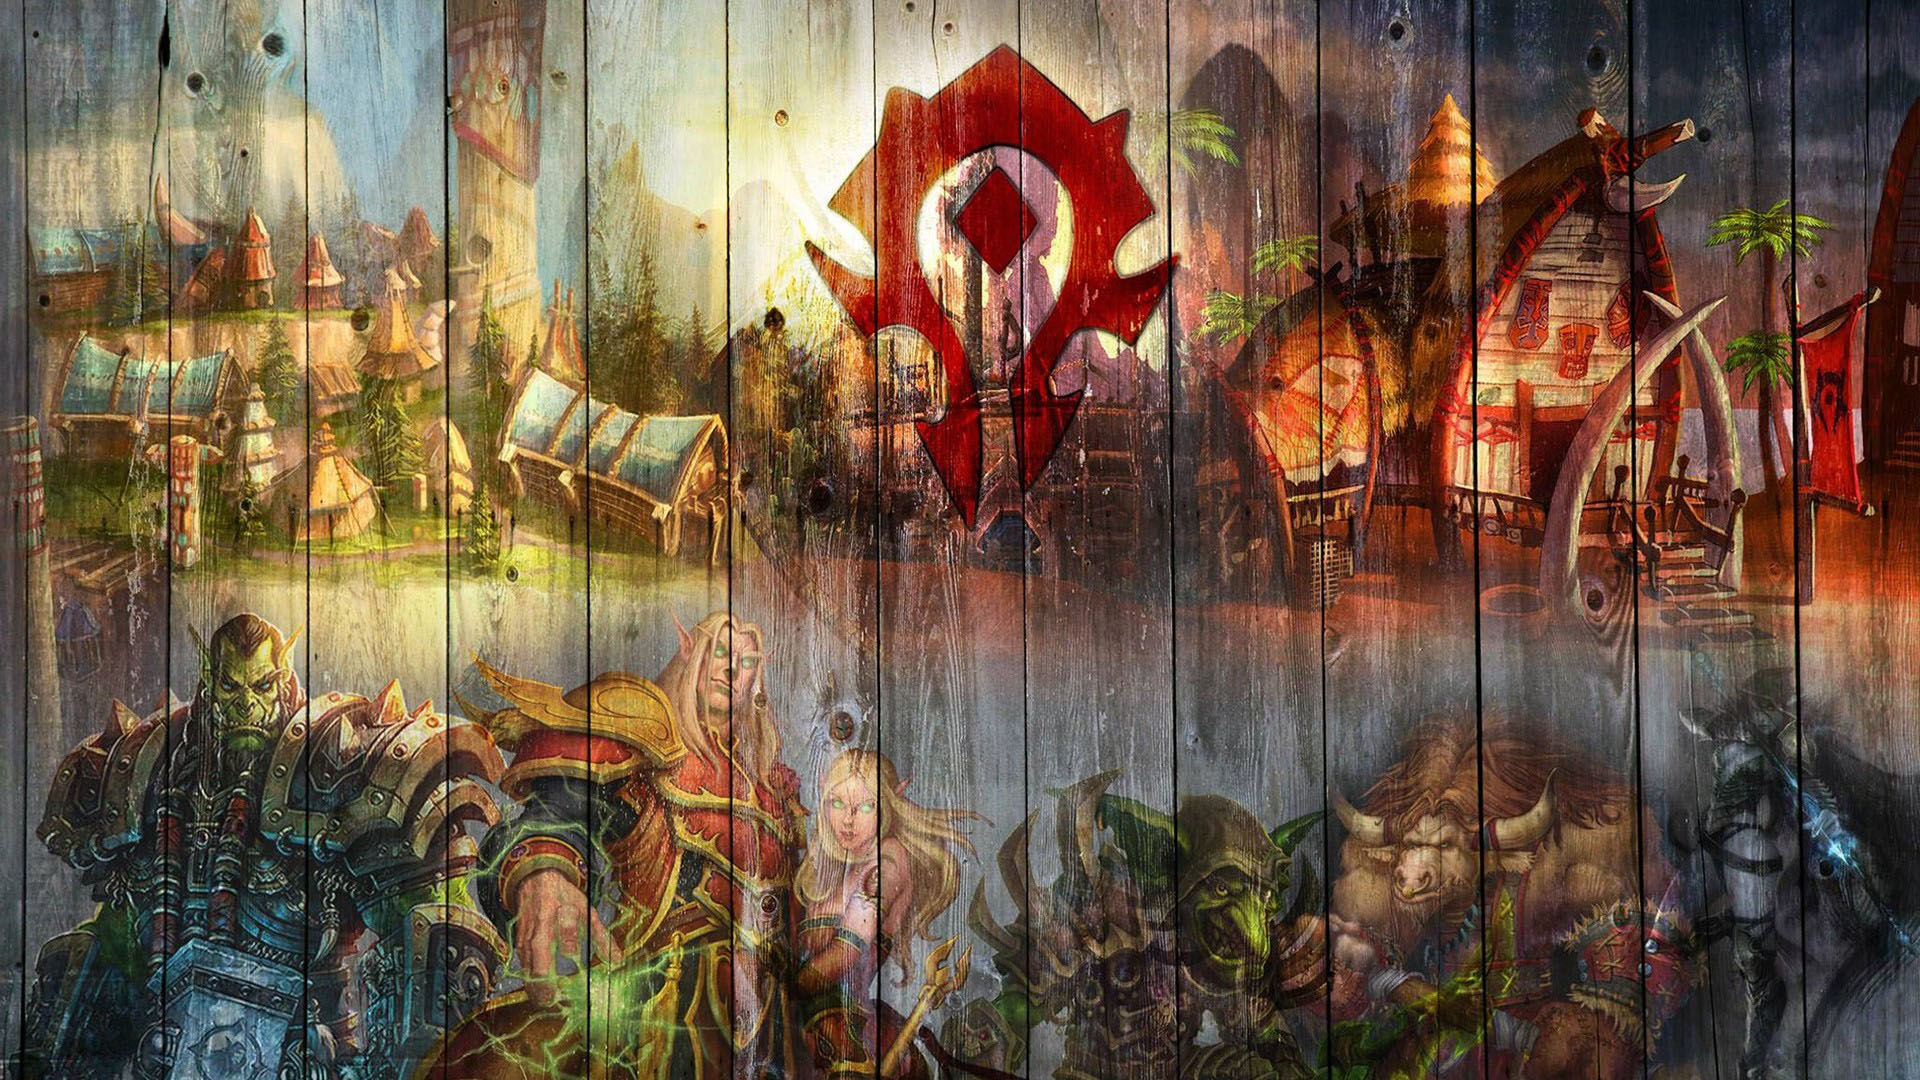 world-of-warcraft-1920%C3%971080-wallpaper-wp38012251